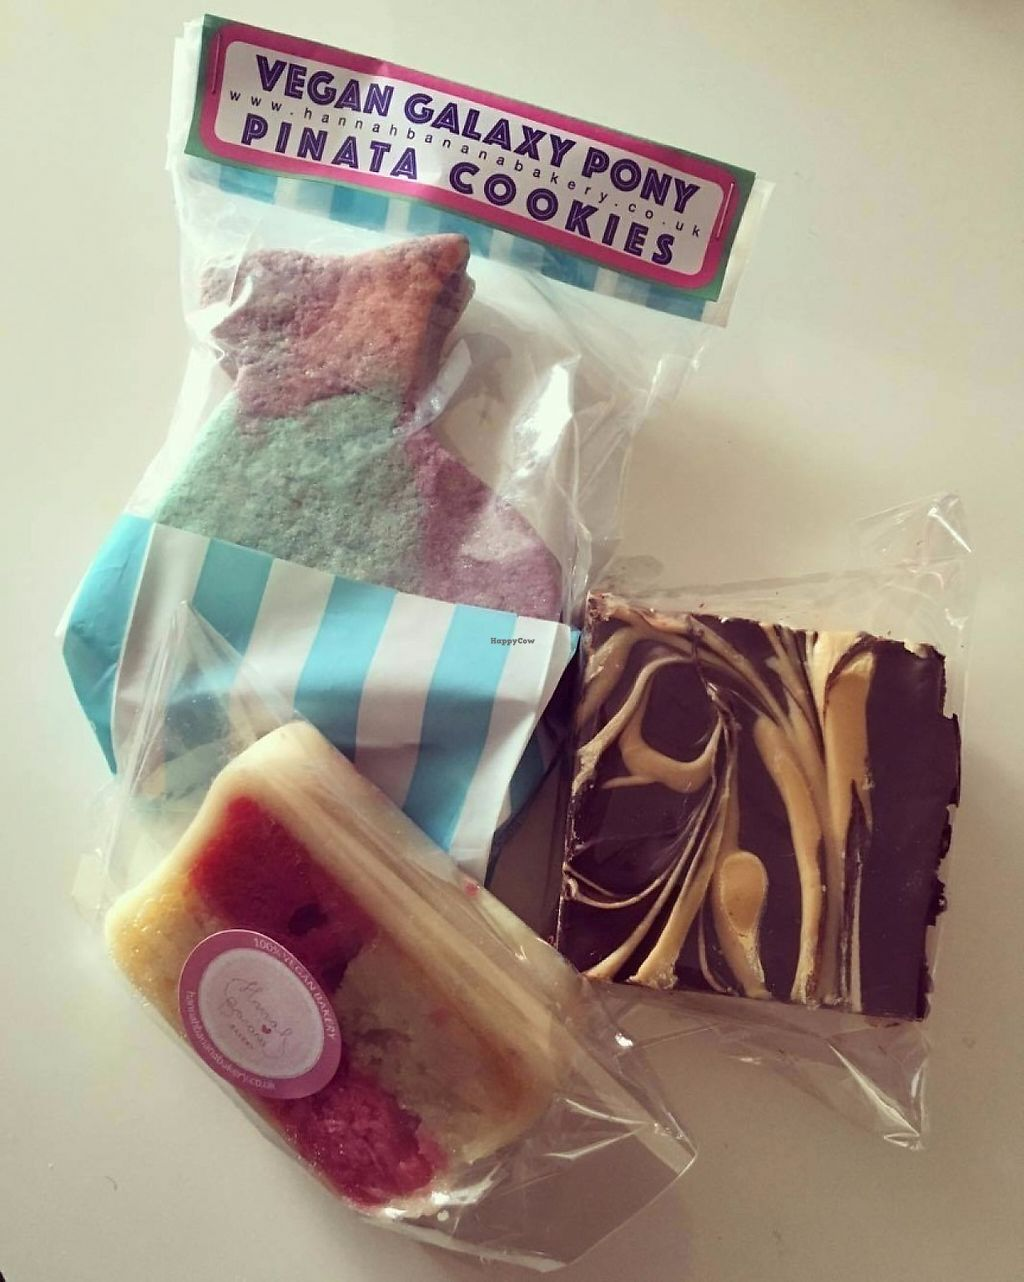 """Photo of Hannah Banana Bakery  by <a href=""""/members/profile/GeorginaAlyssa"""">GeorginaAlyssa</a> <br/>Pinata cookie, battenberg and peanut butter, chocolate crispie square bar! <br/> May 29, 2017  - <a href='/contact/abuse/image/27701/263800'>Report</a>"""